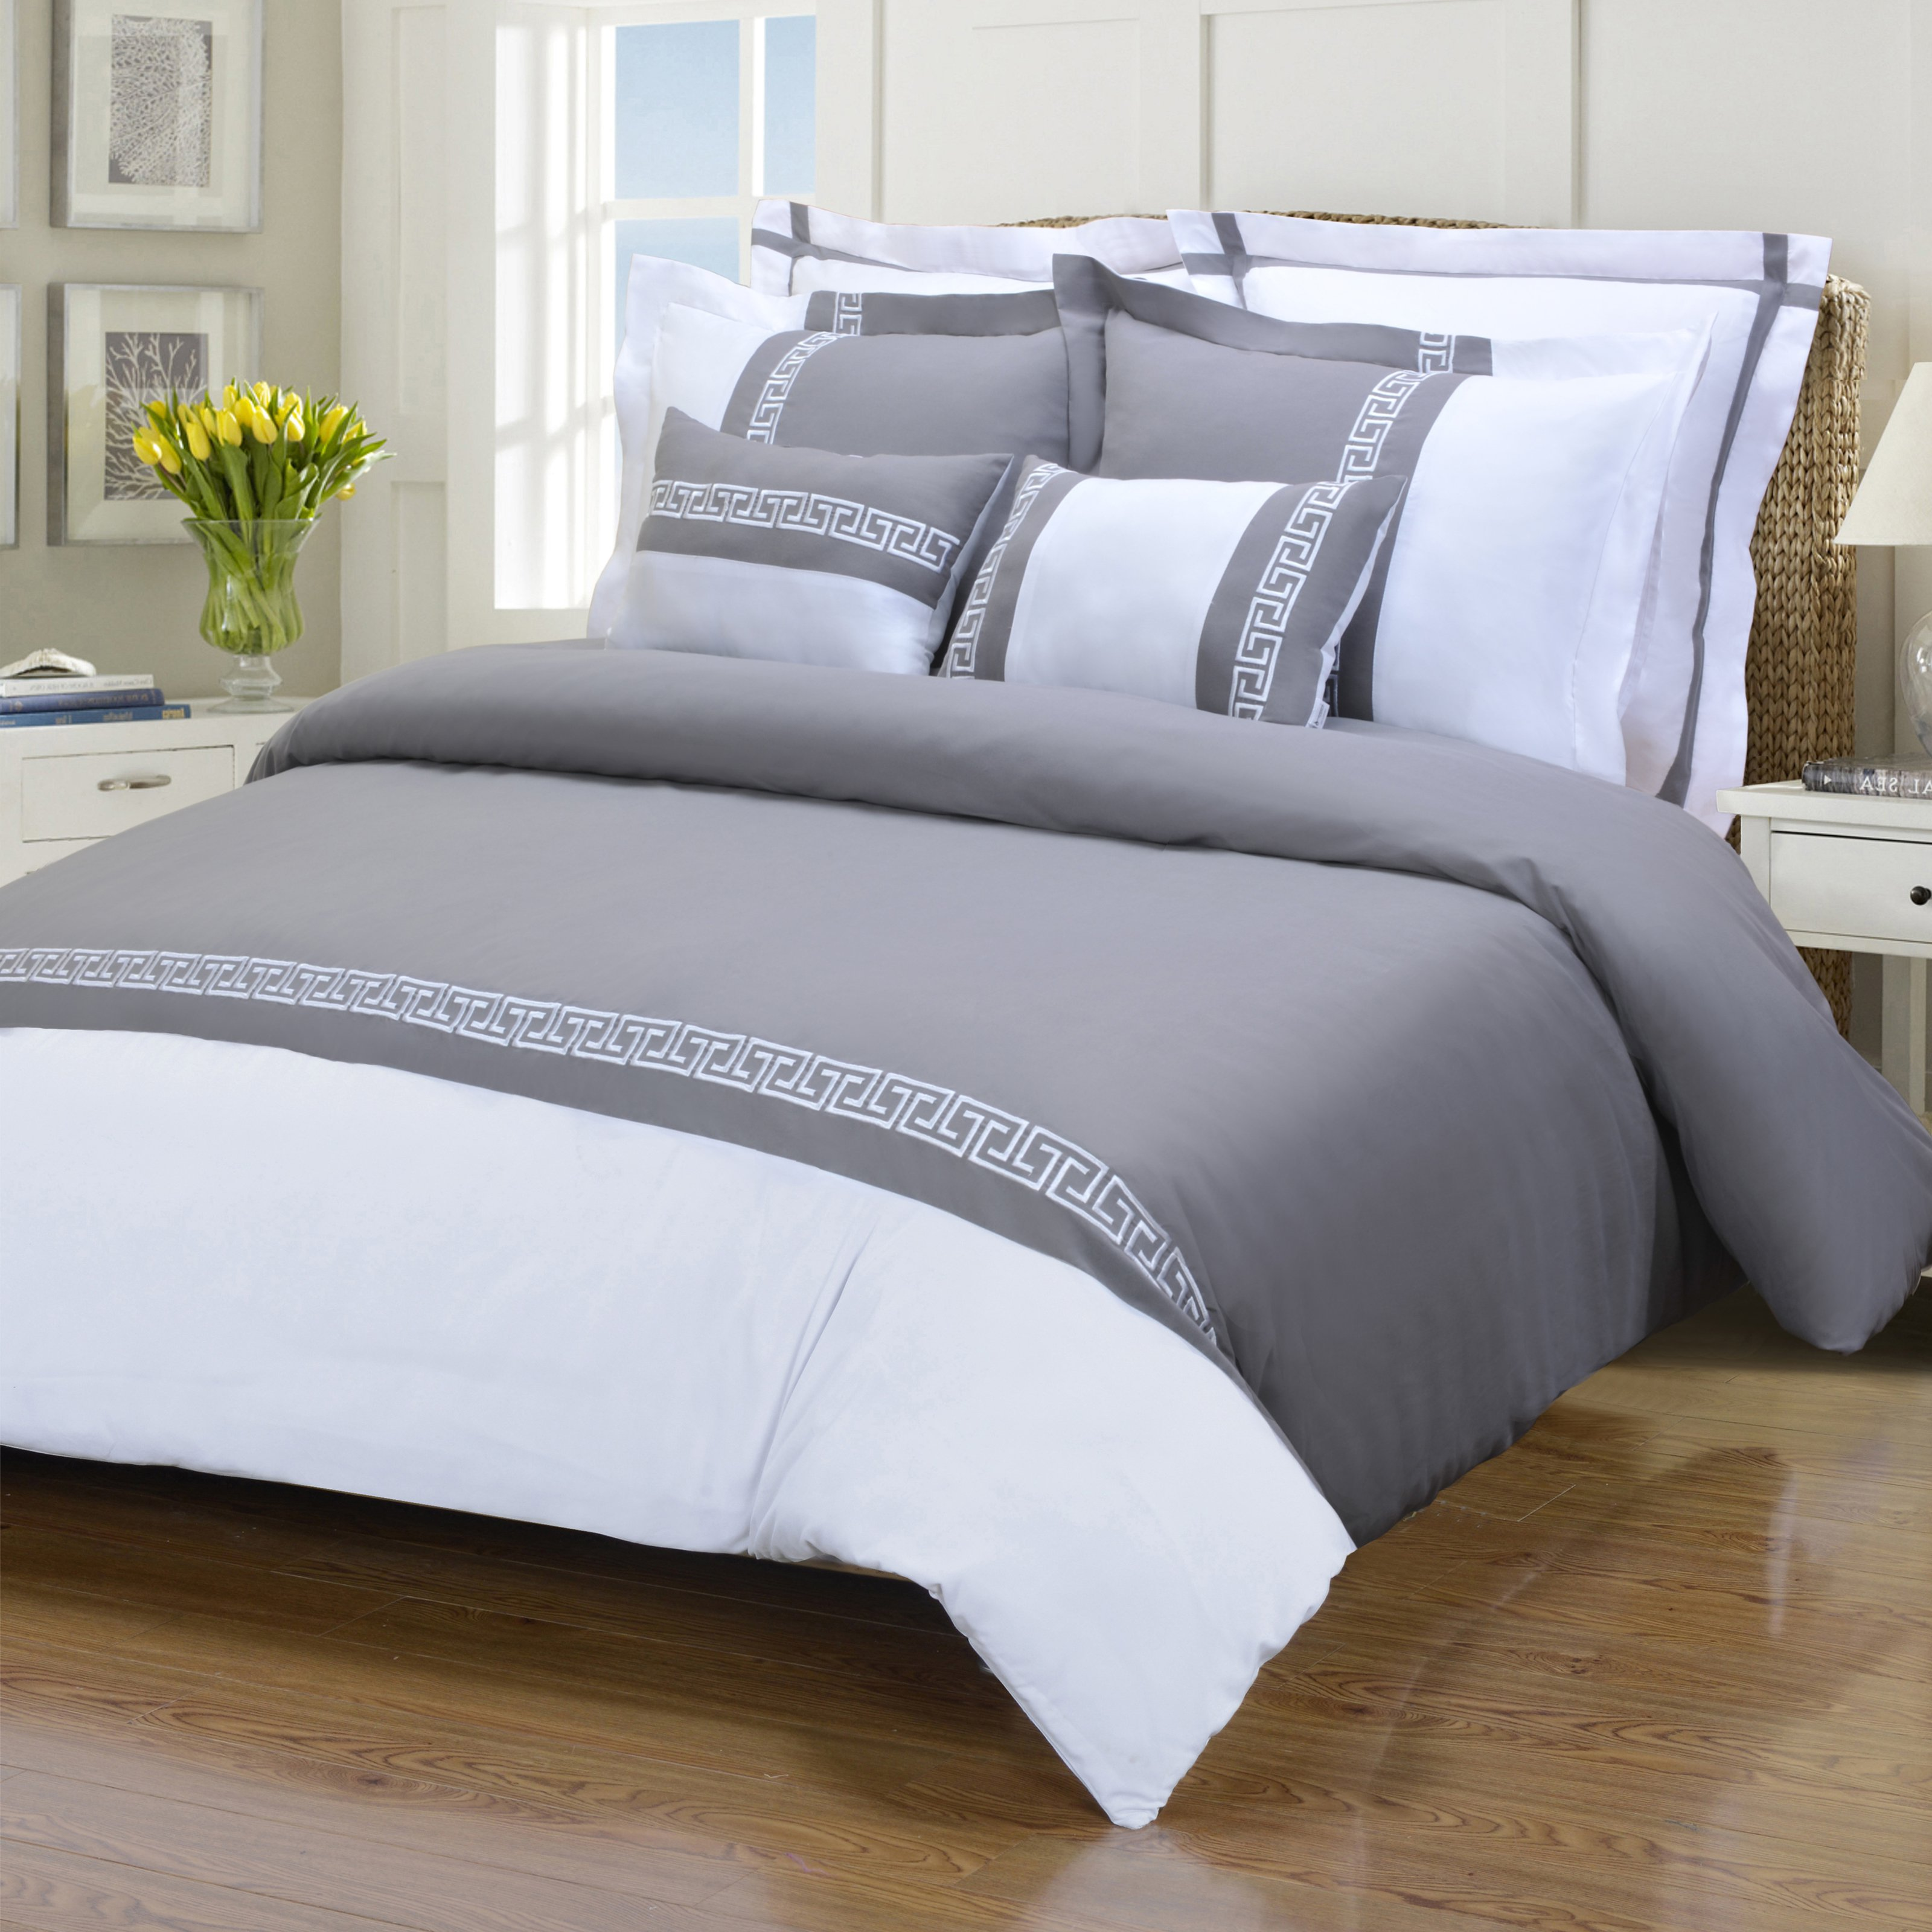 Luxor Treasures Emma by Impressions 7 Piece Duvet Cover Set